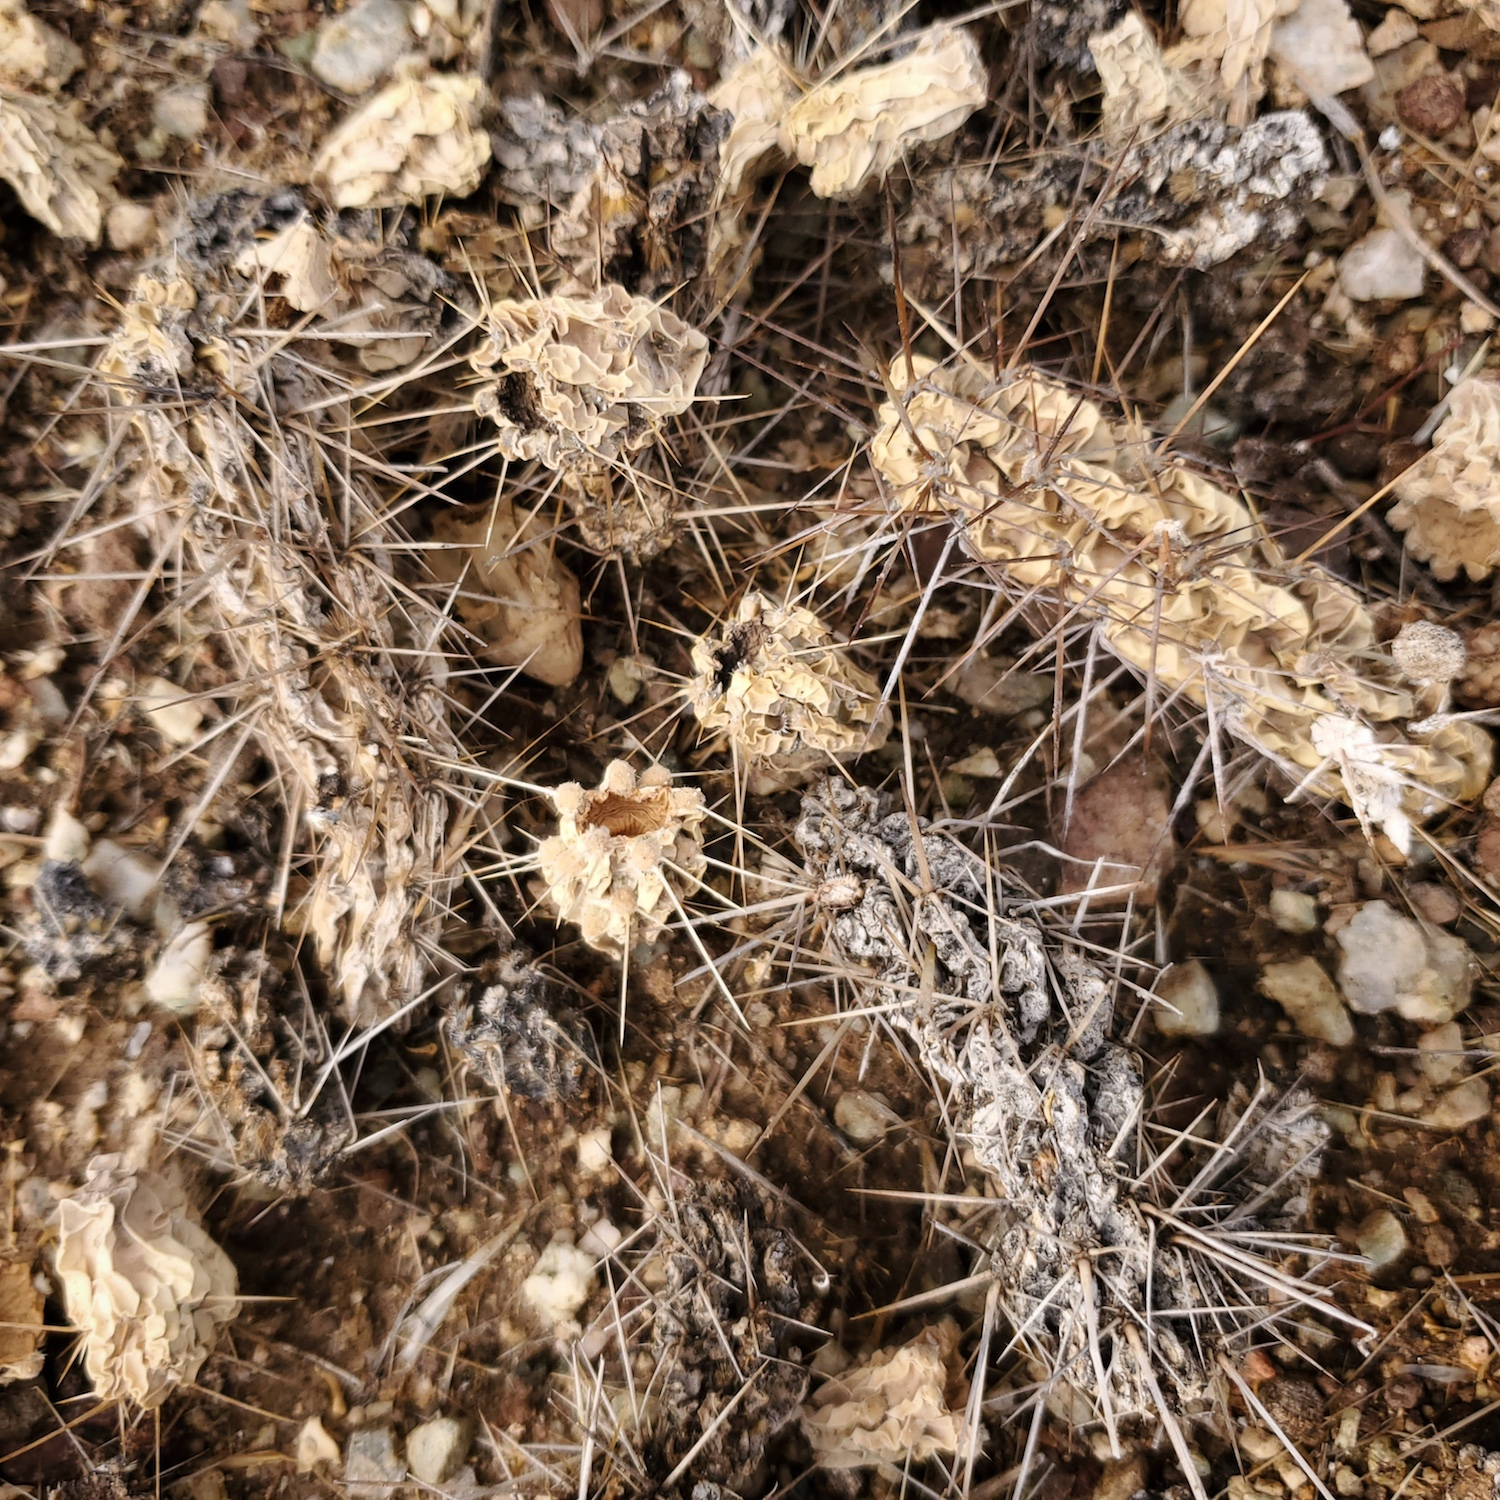 Dried, fallen remnants of a Cholla cactus